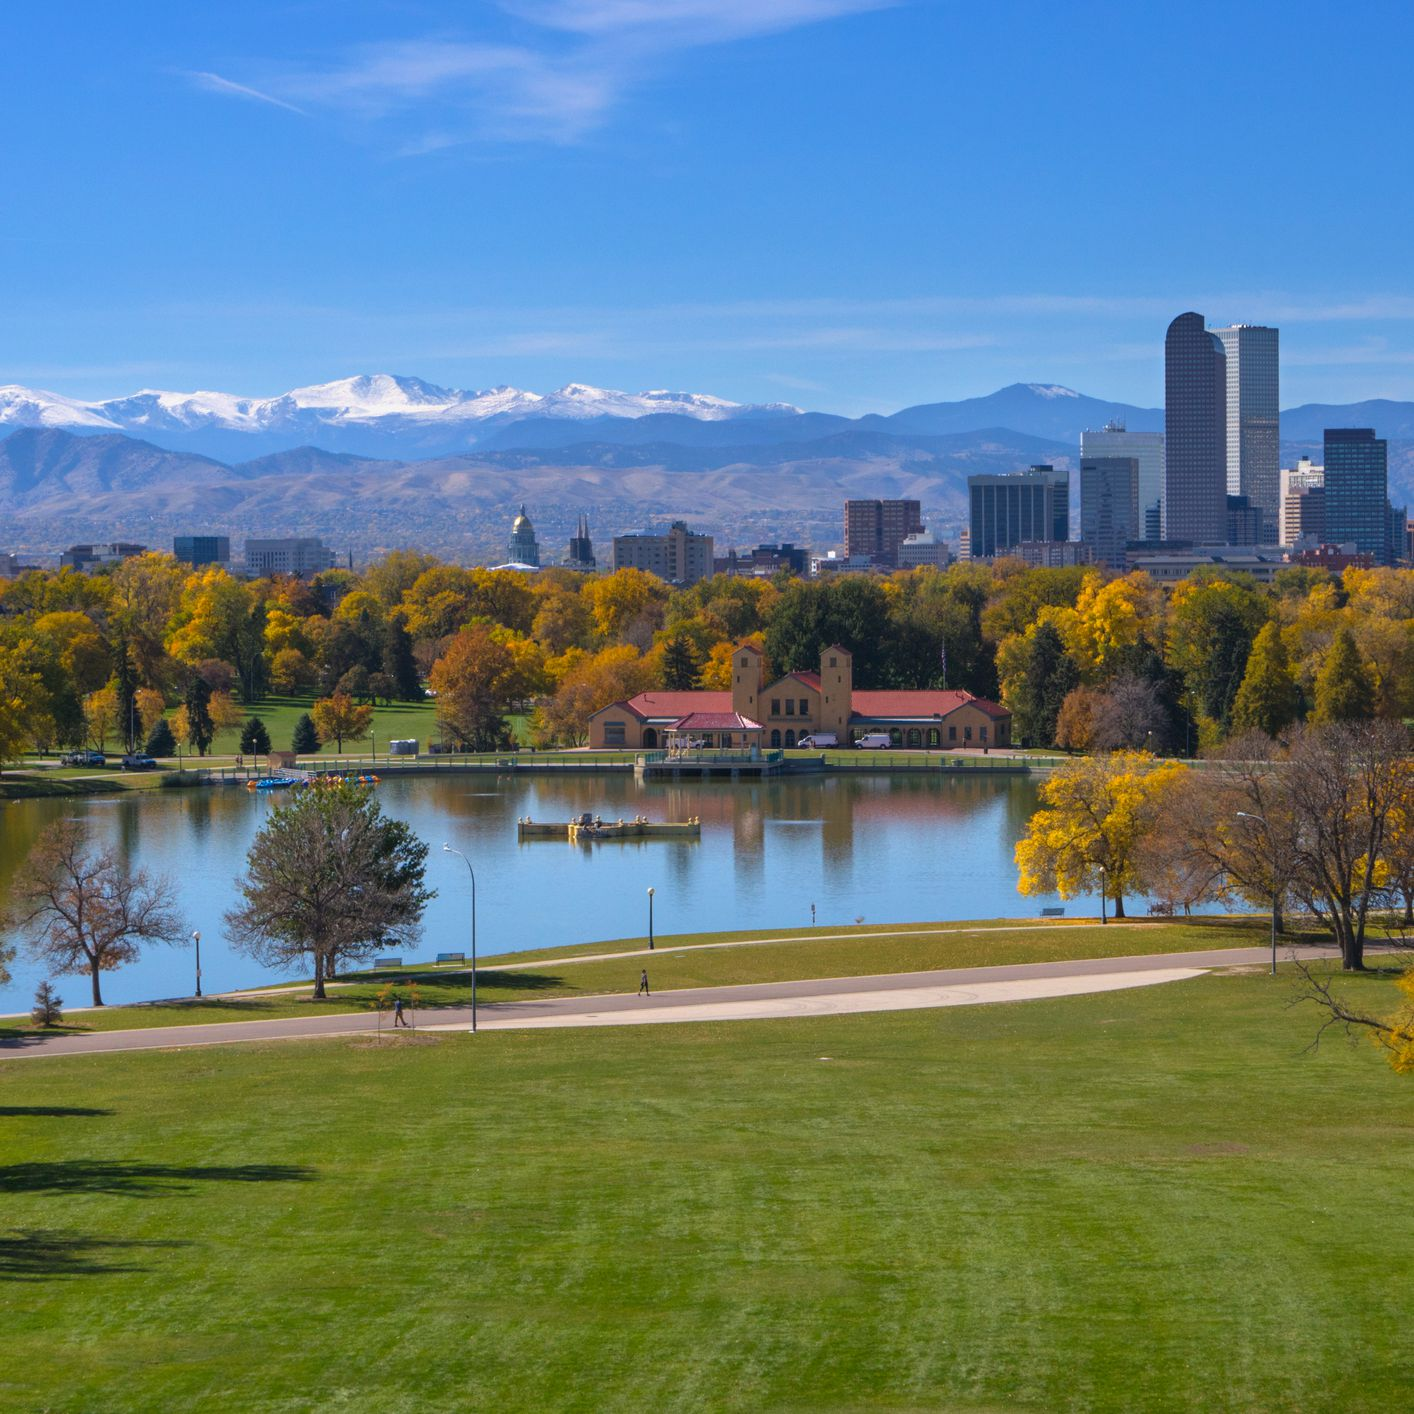 The Best Time to Visit Colorado